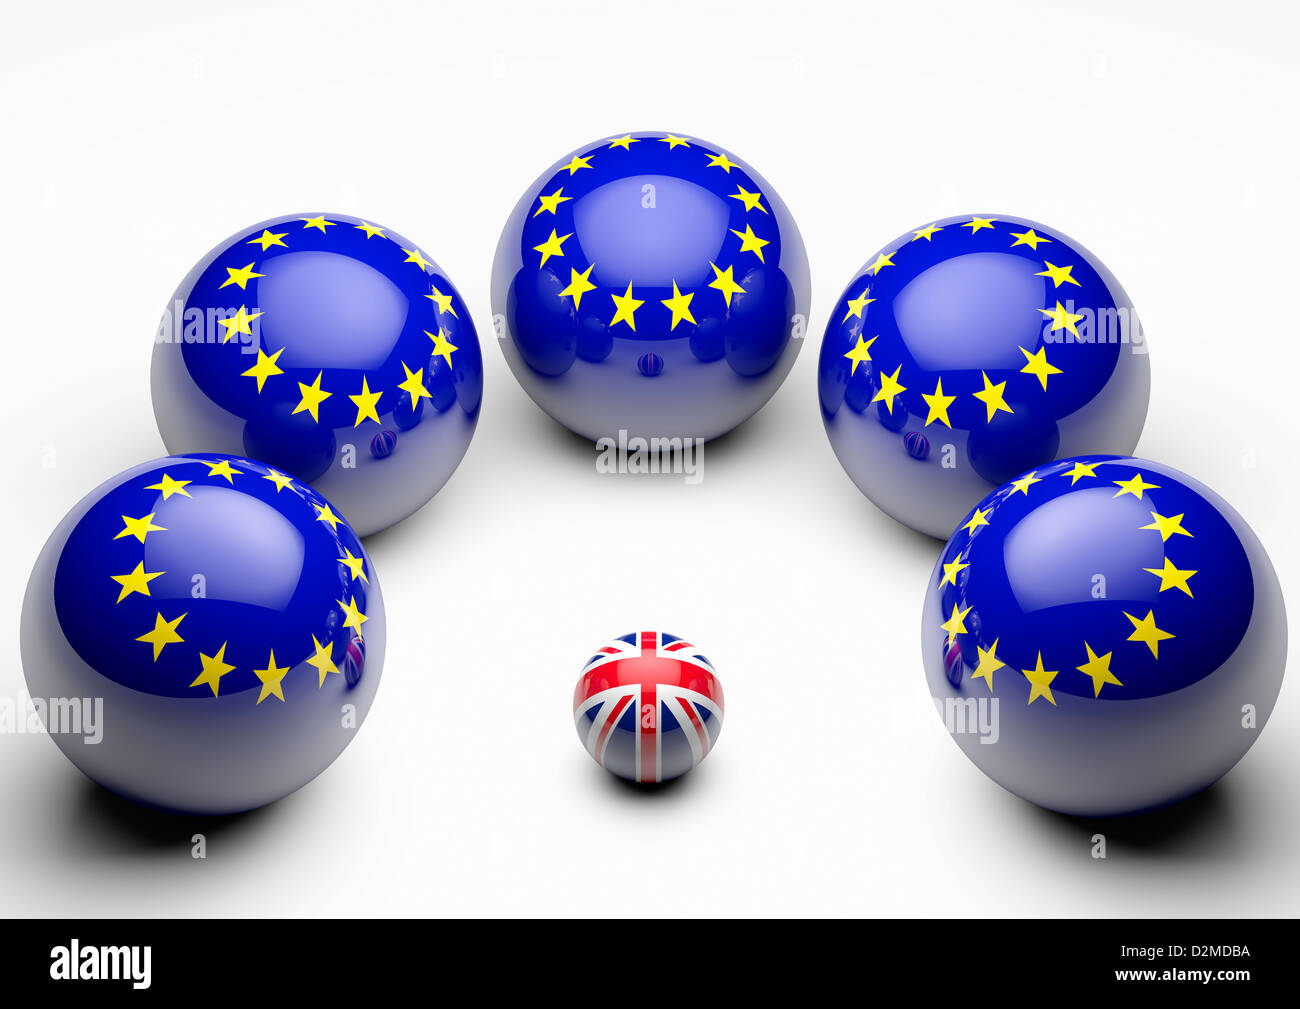 Large European Union flag spheres crowding round tiny British Union flag - European Union relationship relations - Stock Image